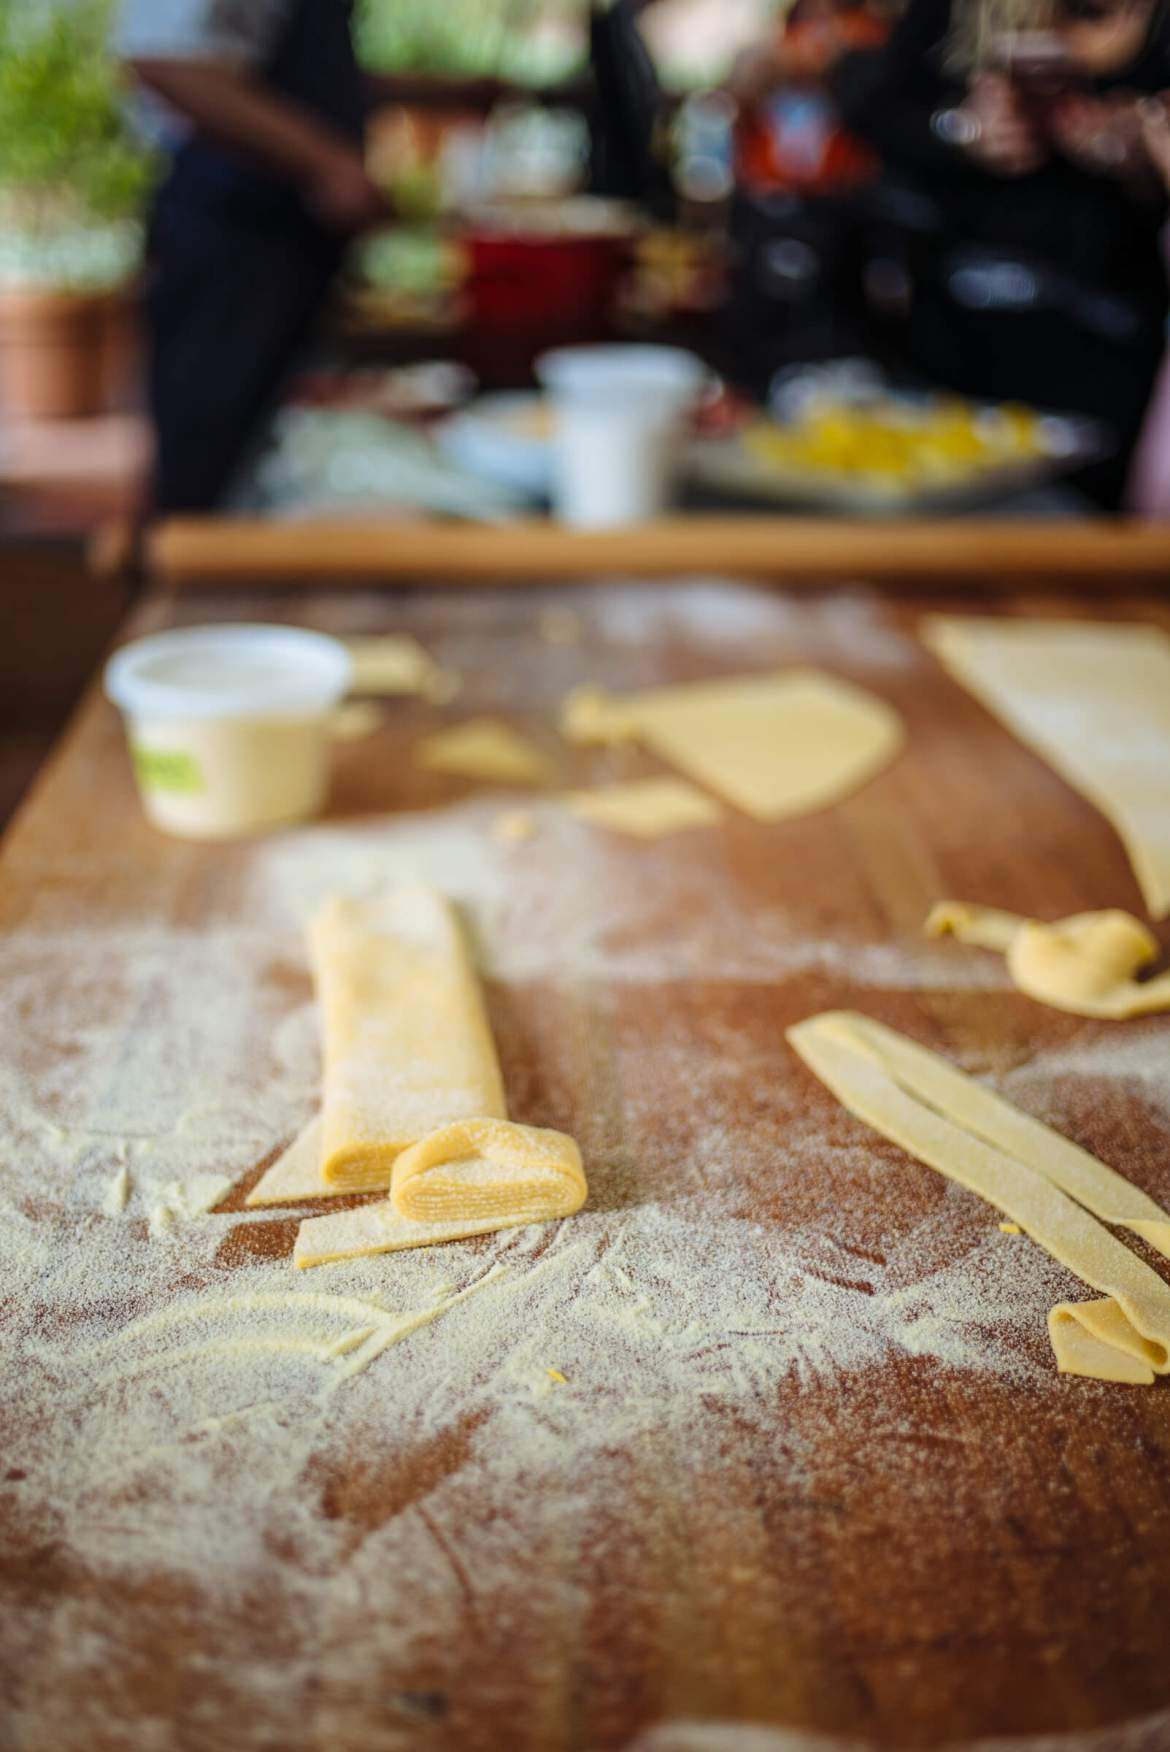 Michael Tusk of Quince's fresh pasta at his demo on how to make handmade pasta at Relais and Chateaux GourmetFest in Carmel